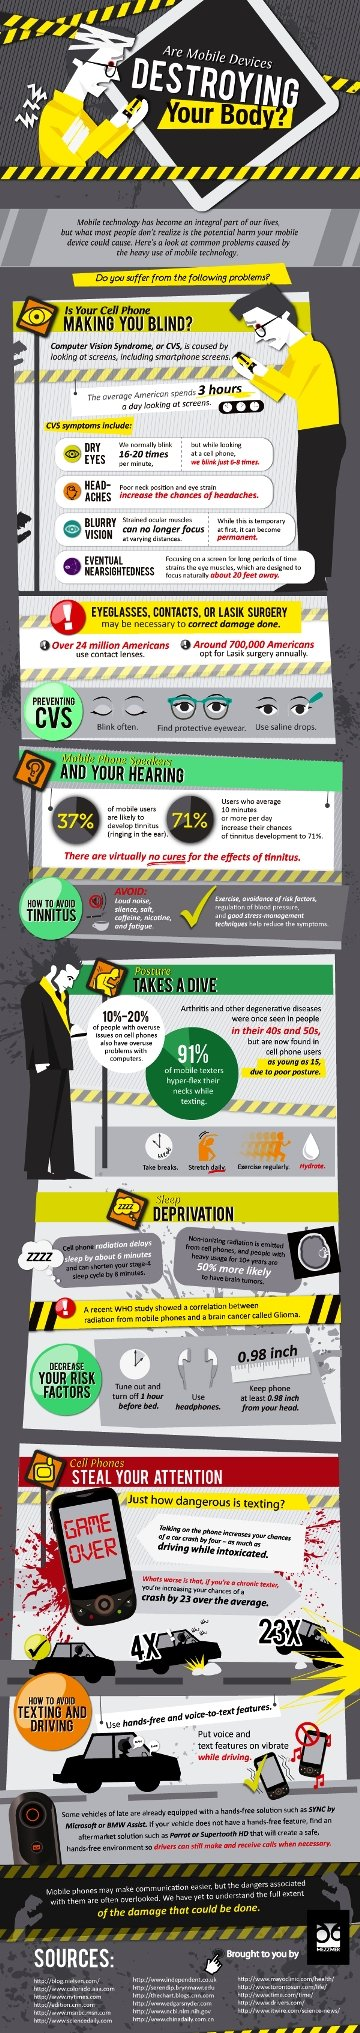 are mobile devices destroying your body #infographic